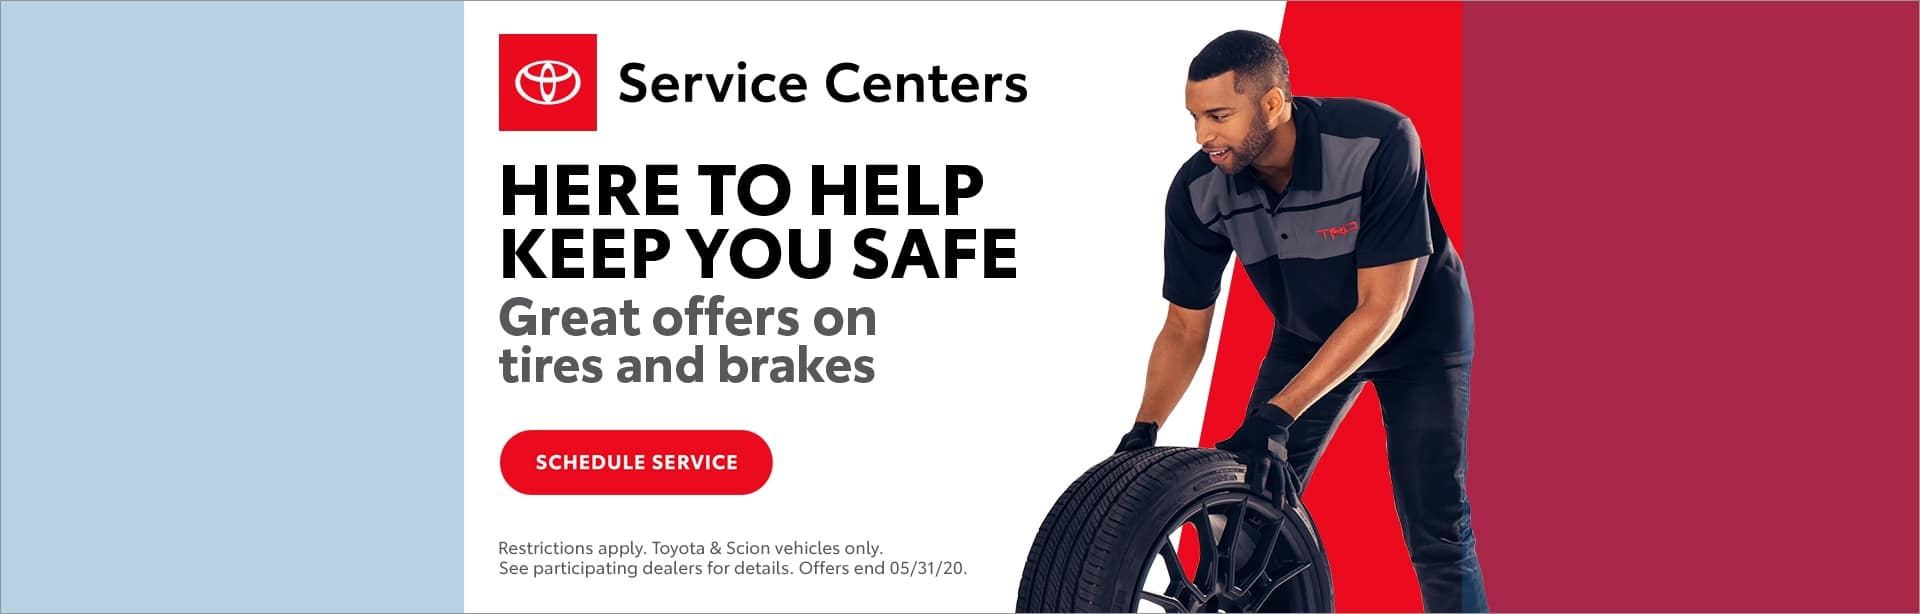 We're here to keep you safe at Carver Toyota